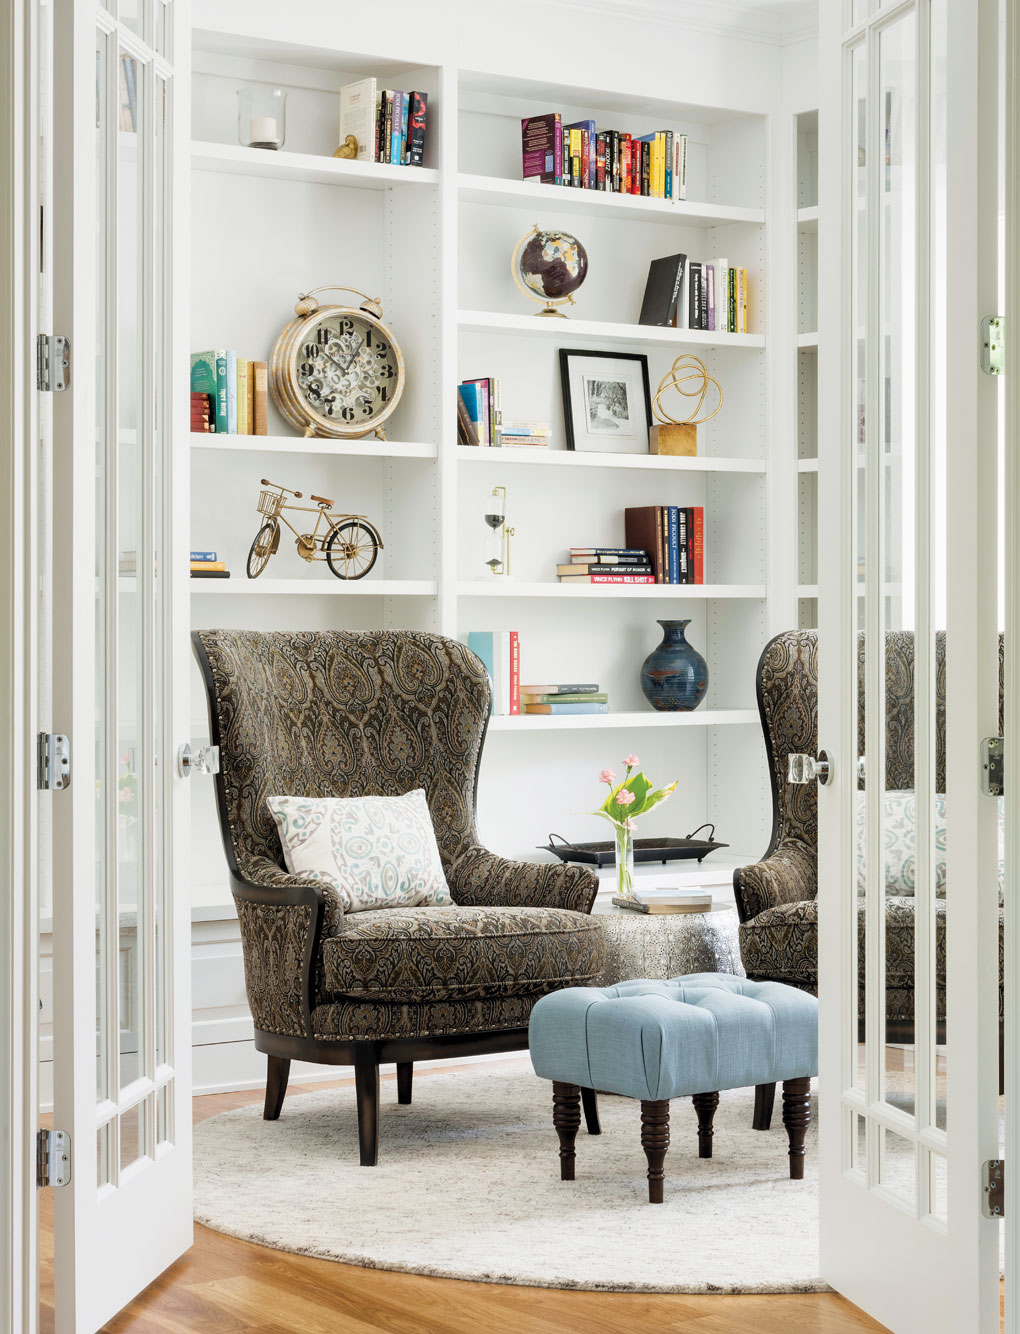 A personal library boasts floor-to-ceiling bookshelves and a chair to relax in.